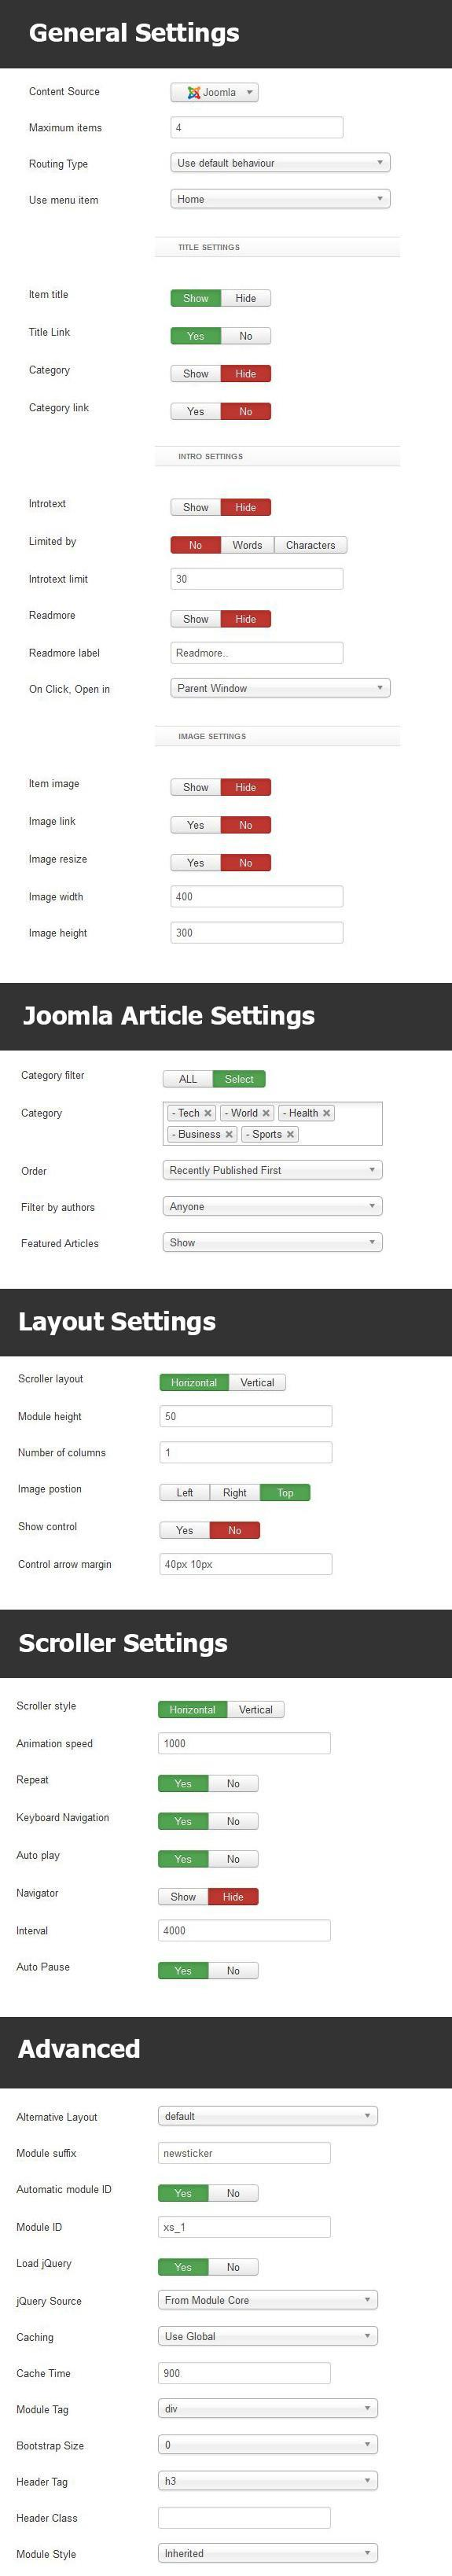 Newsticker Module Settings